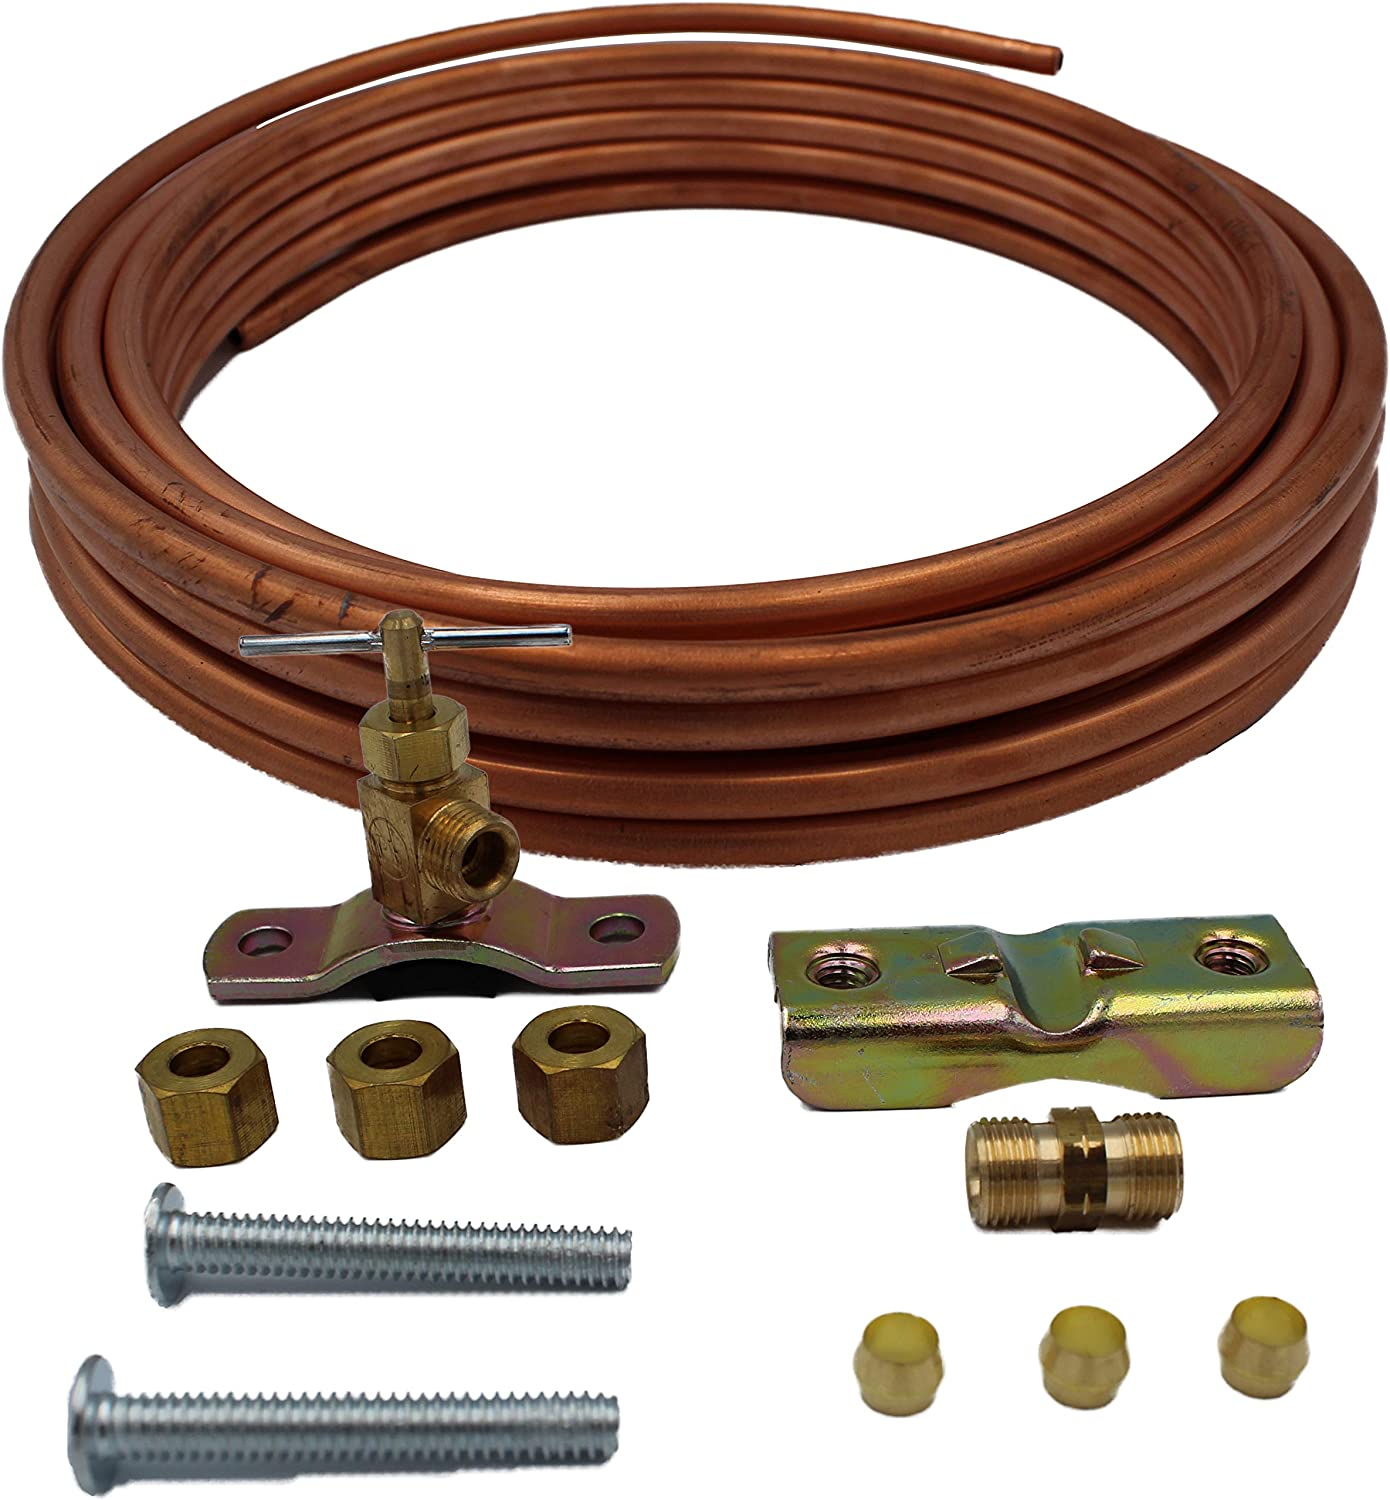 Supplying Demand SD25 Copper Line Tubing Kit For Icemaker Ice Machine Residential Water Or Humidifier Installation Hook Up - Self Tapping Valve Included (25 Foot)